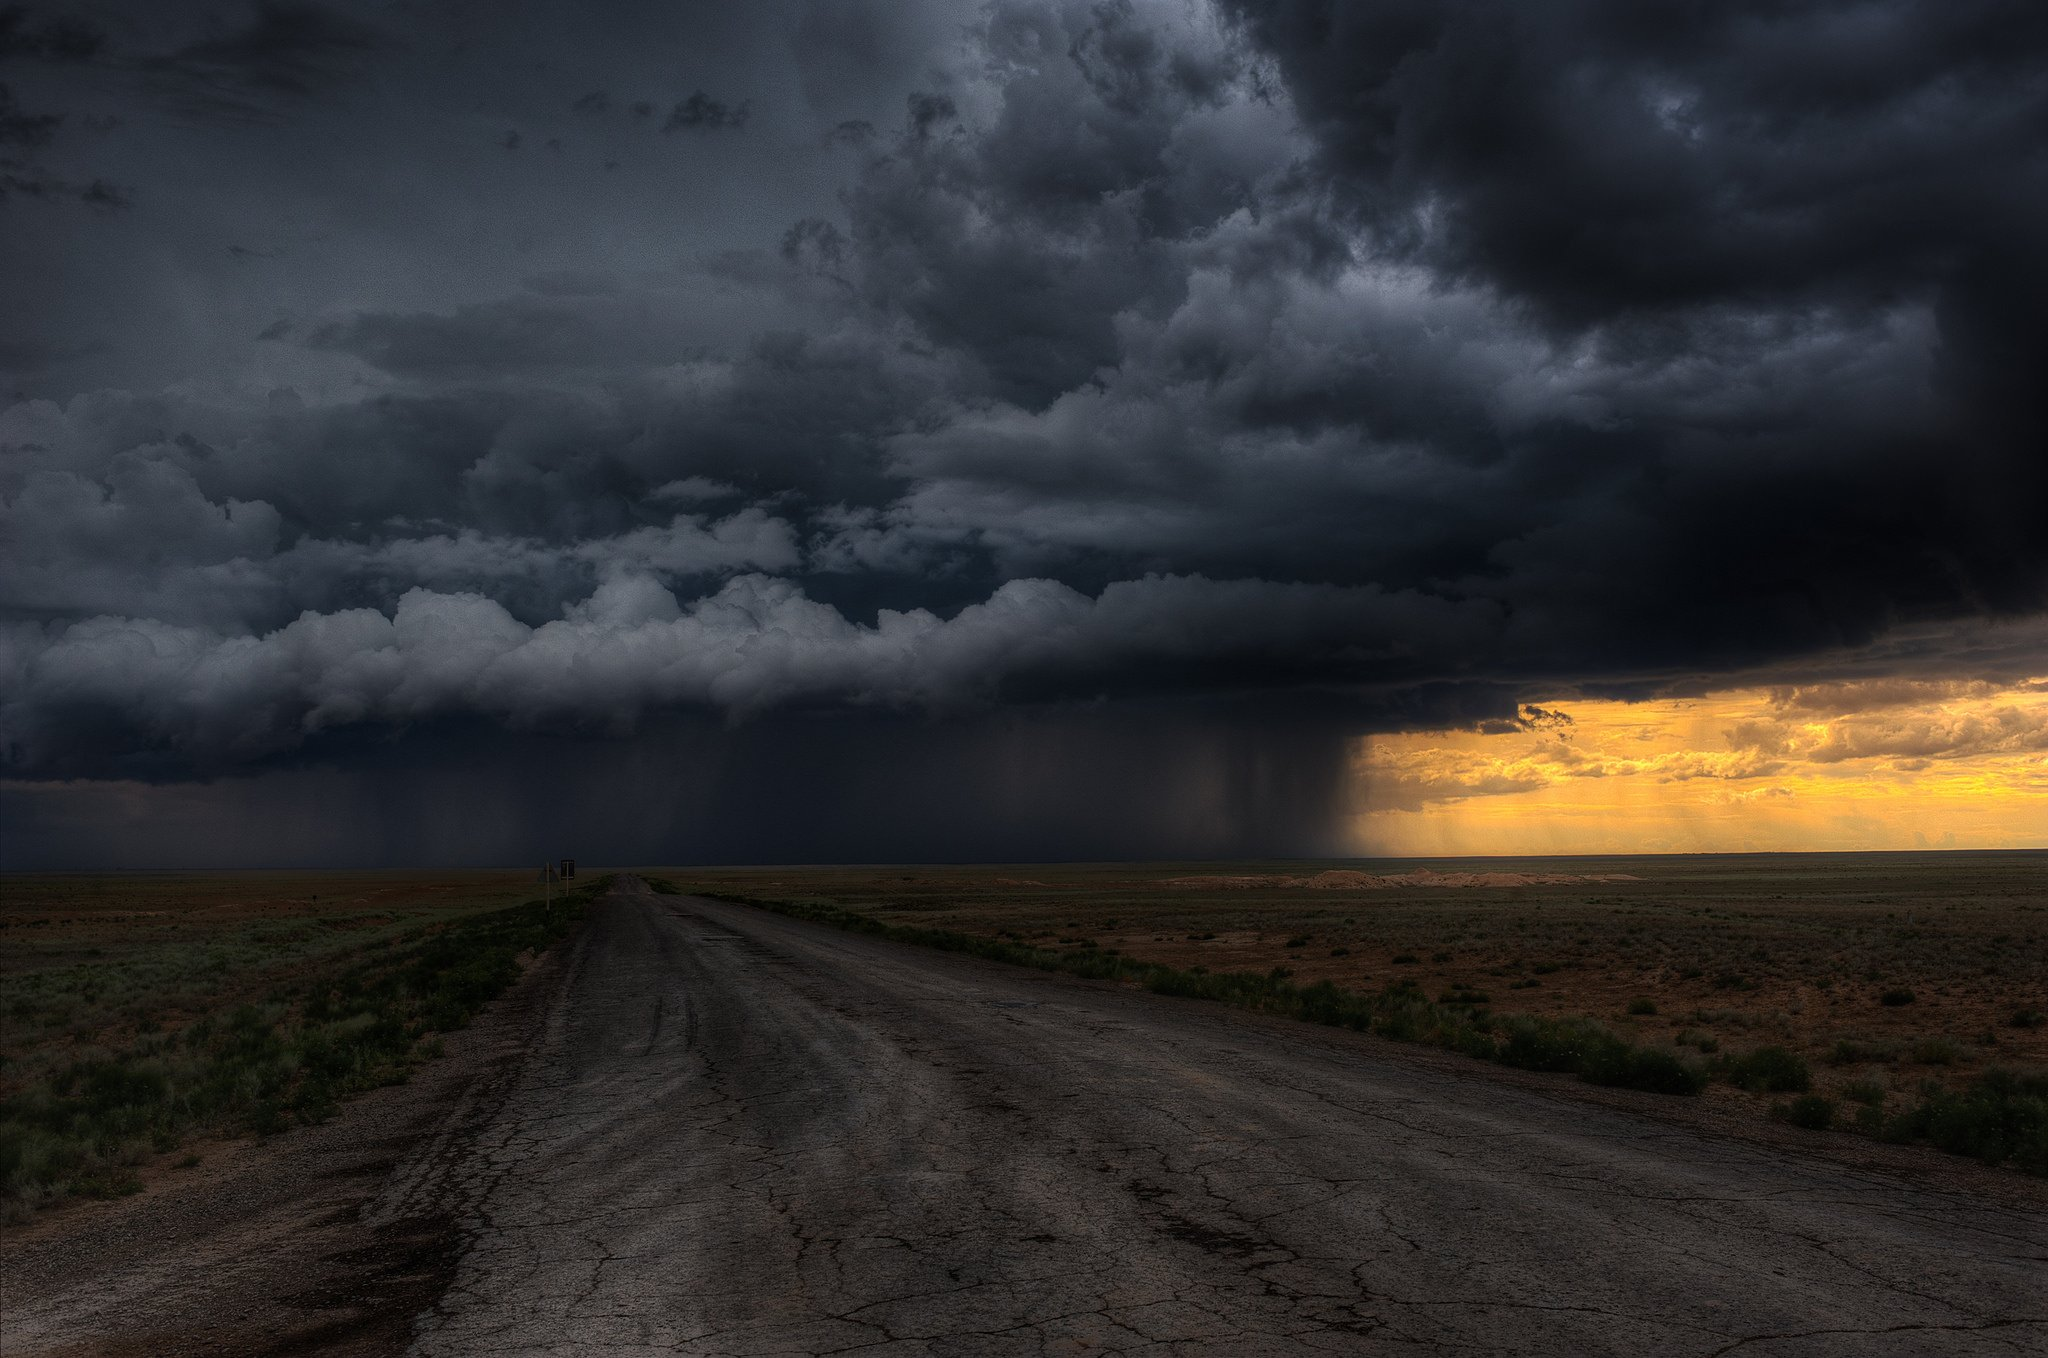 Road clouds field storm rain sky wallpaper 2048x1358 364872 2048x1358